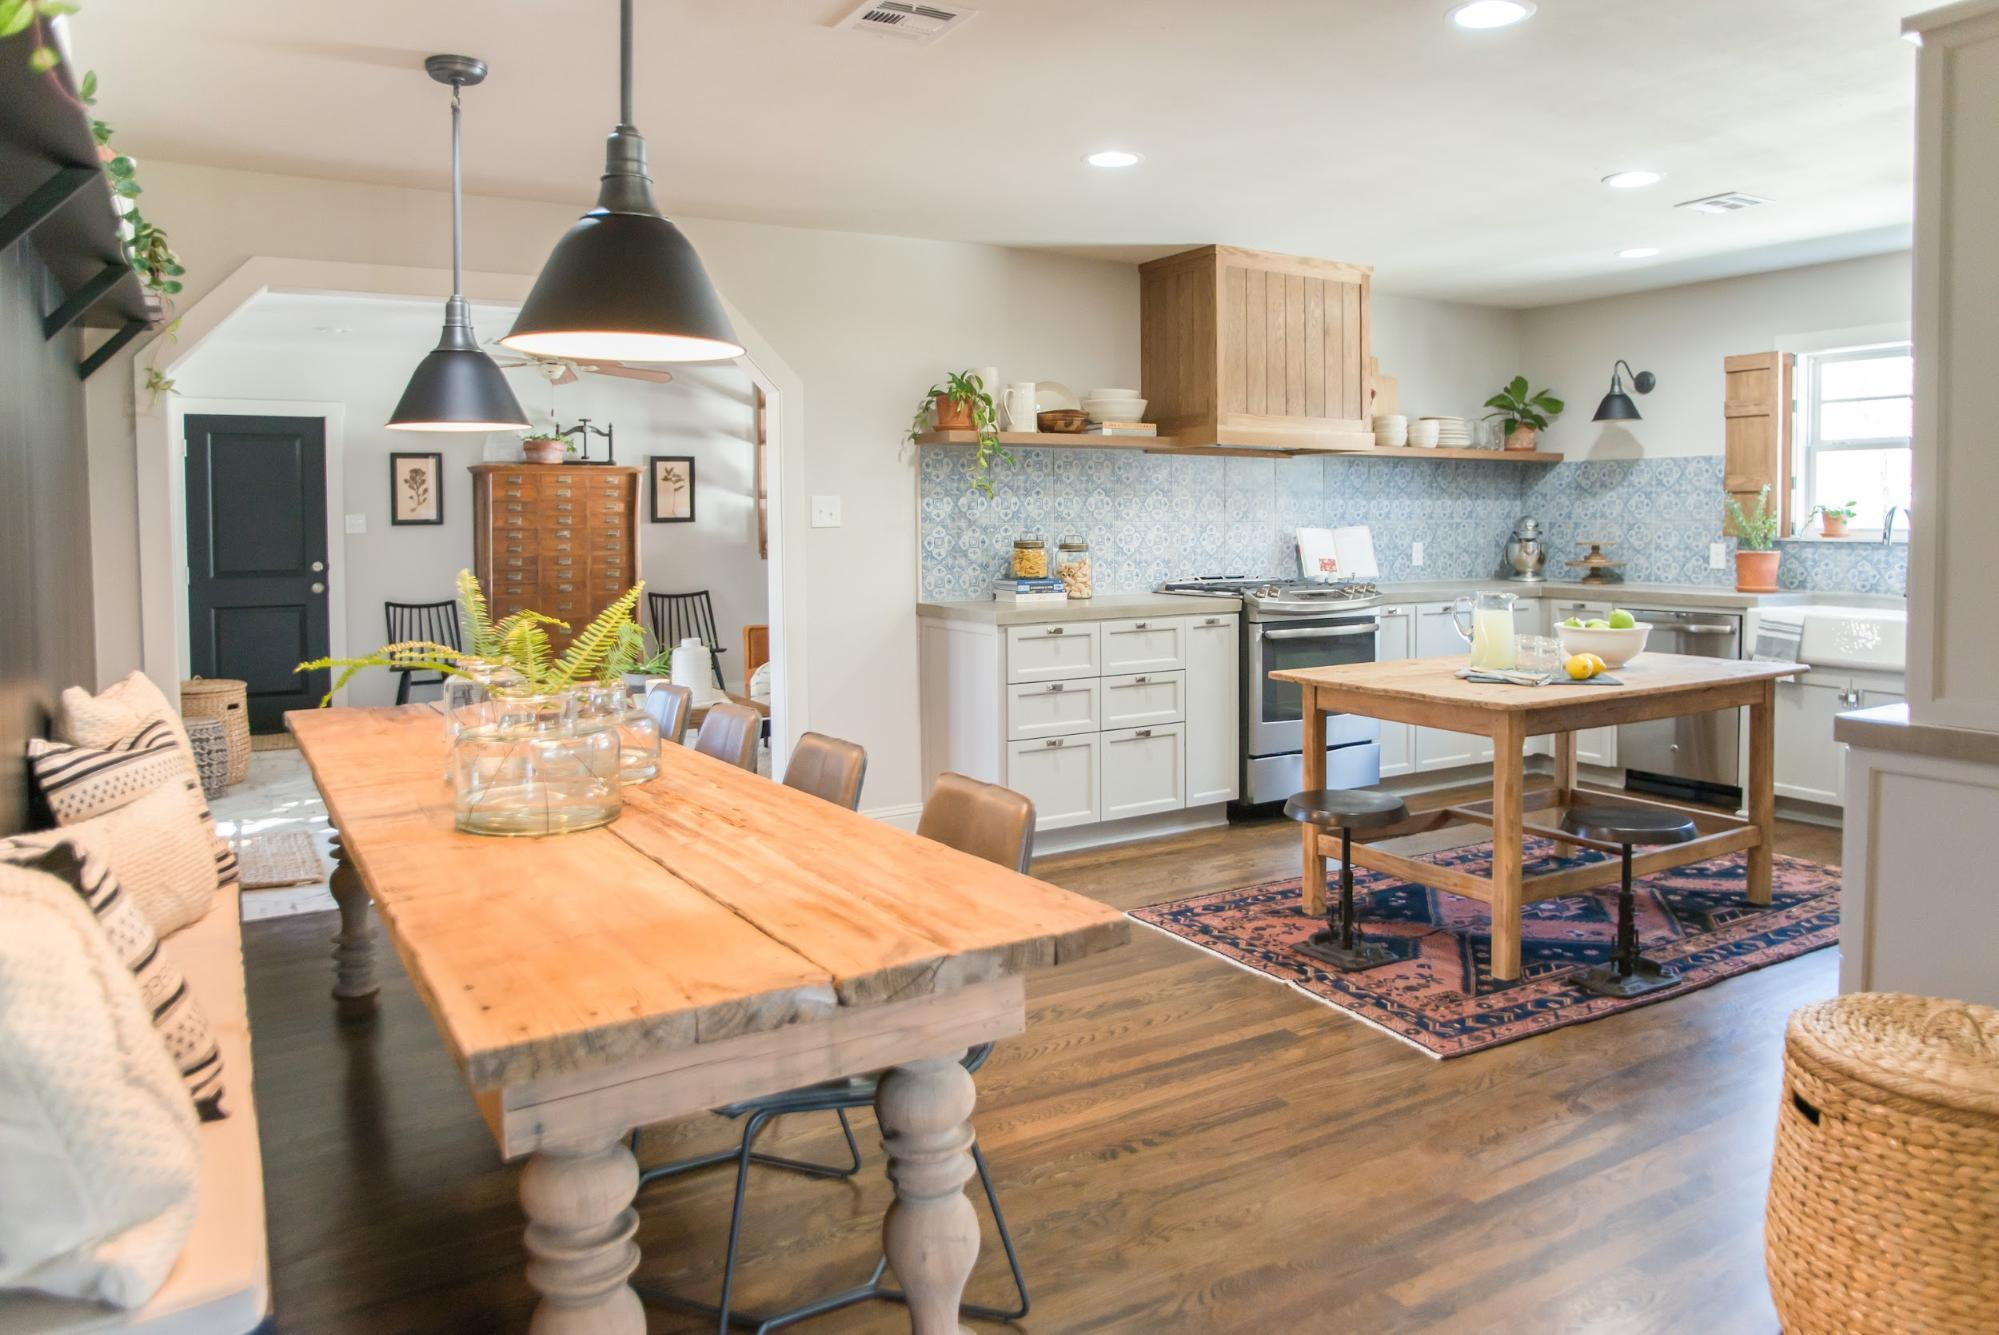 Design Tips From The Baker House Magnolia